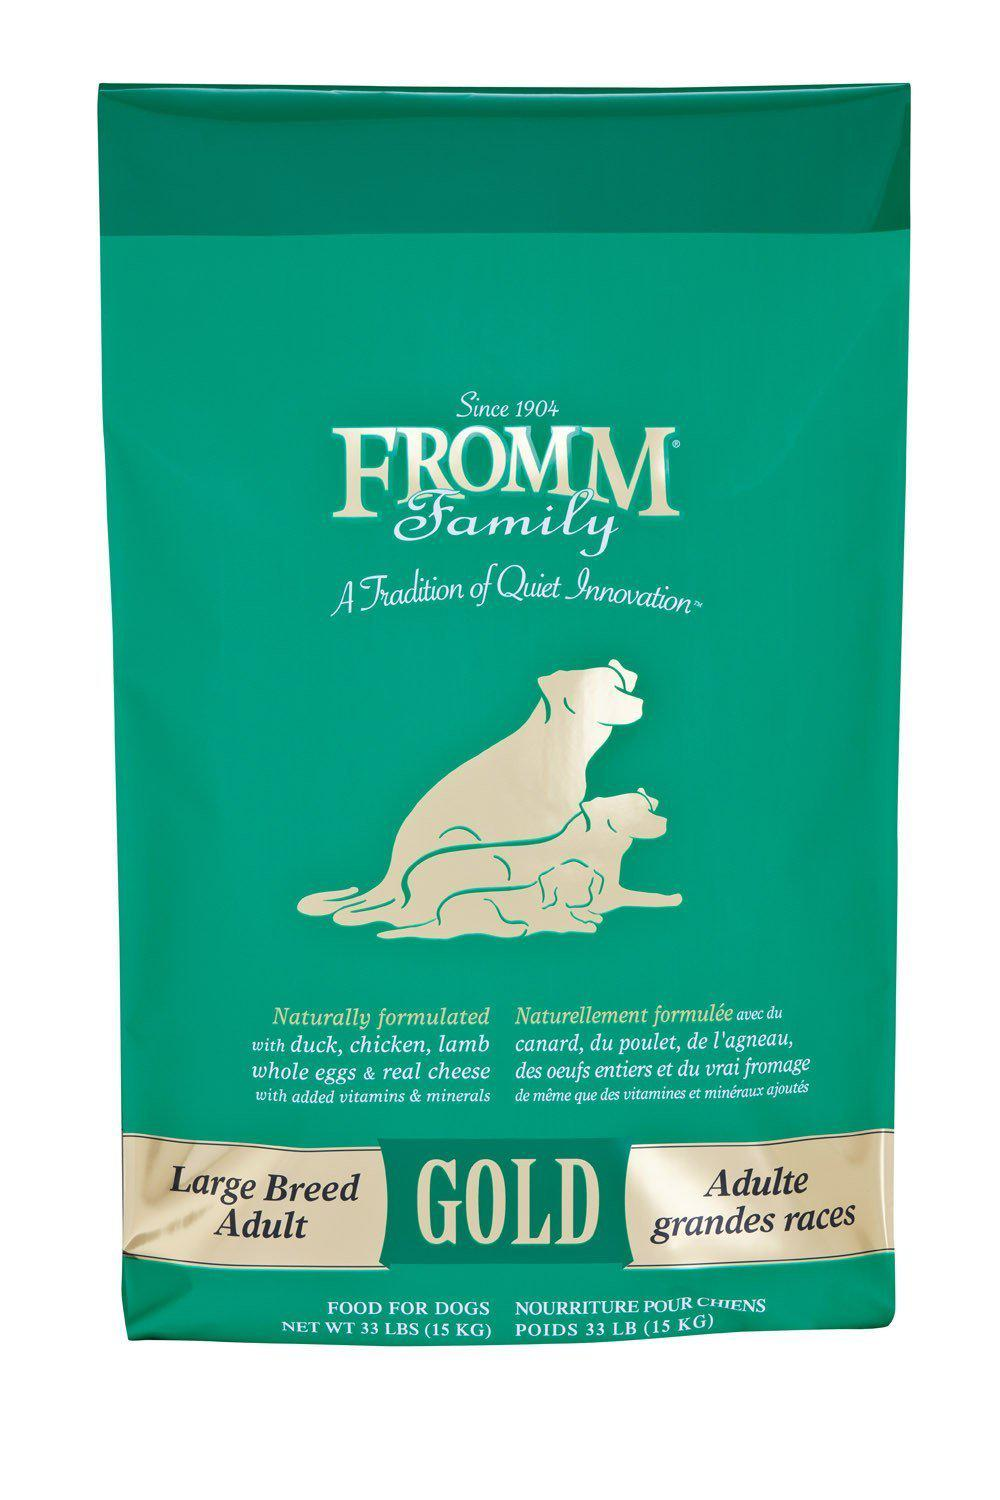 Fromm Dog Food - Gold Large Breed Adult-Le Pup Pet Supplies and Grooming